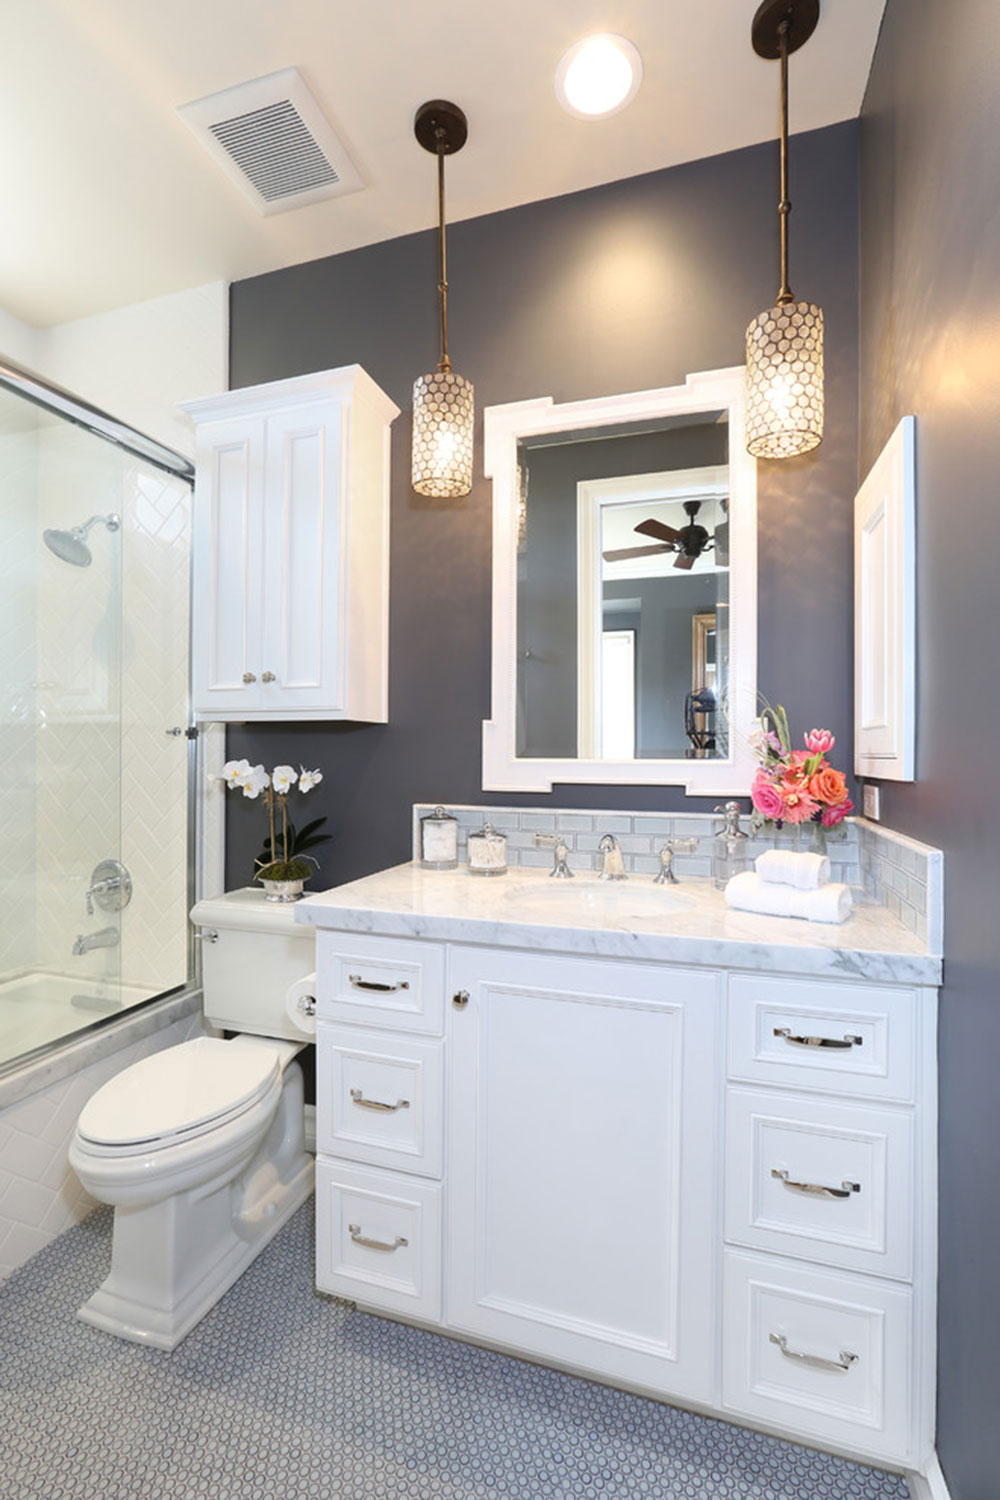 How-To-Make-A-Small-Bathroom-Look-Bigger8 How & How To Make A Small Bathroom Look Bigger - Tips and Ideas